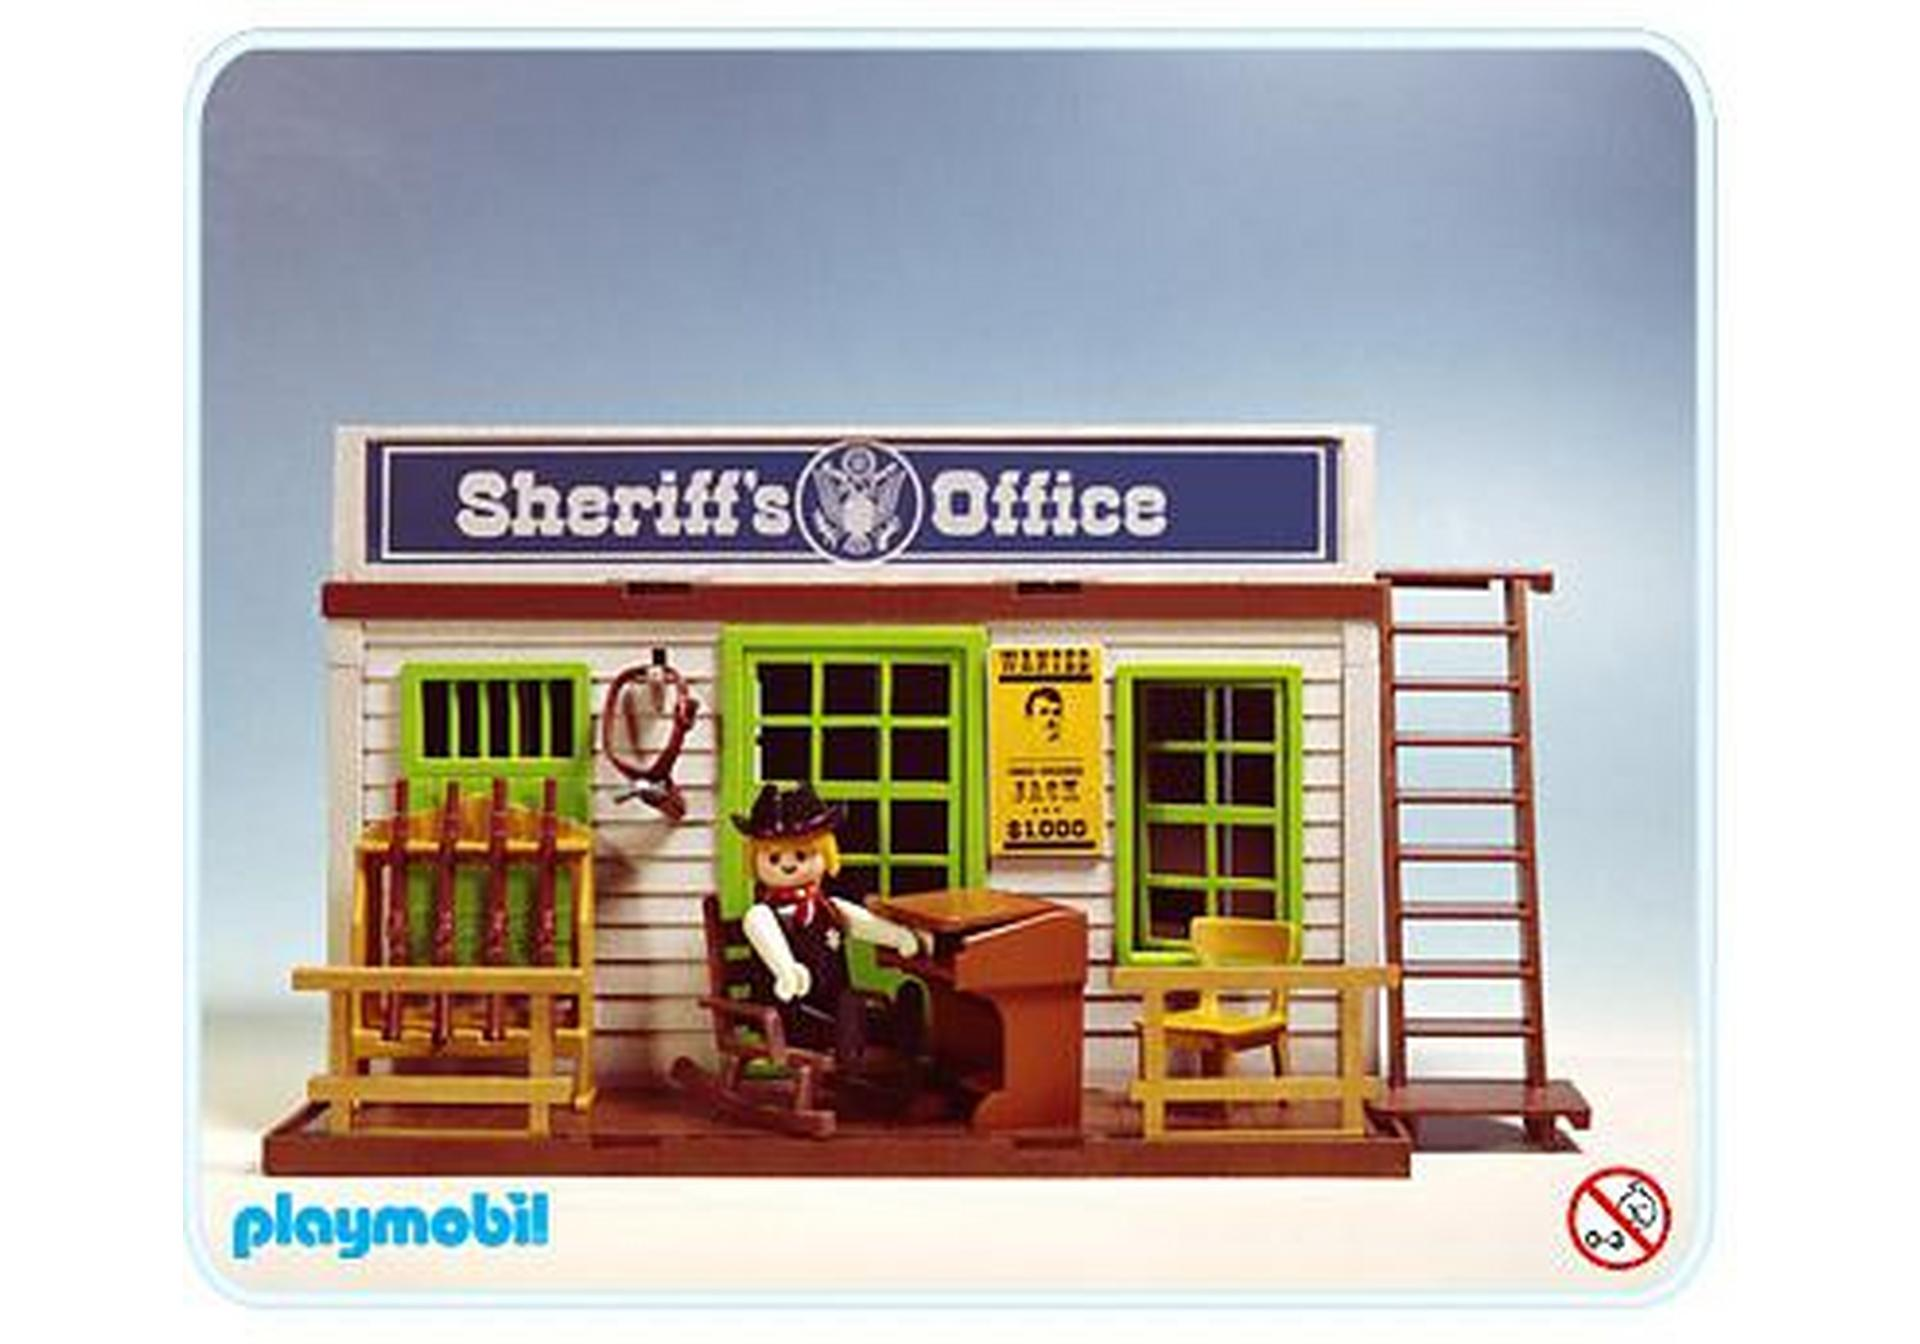 bureau du sheriff 3423 a playmobil france. Black Bedroom Furniture Sets. Home Design Ideas